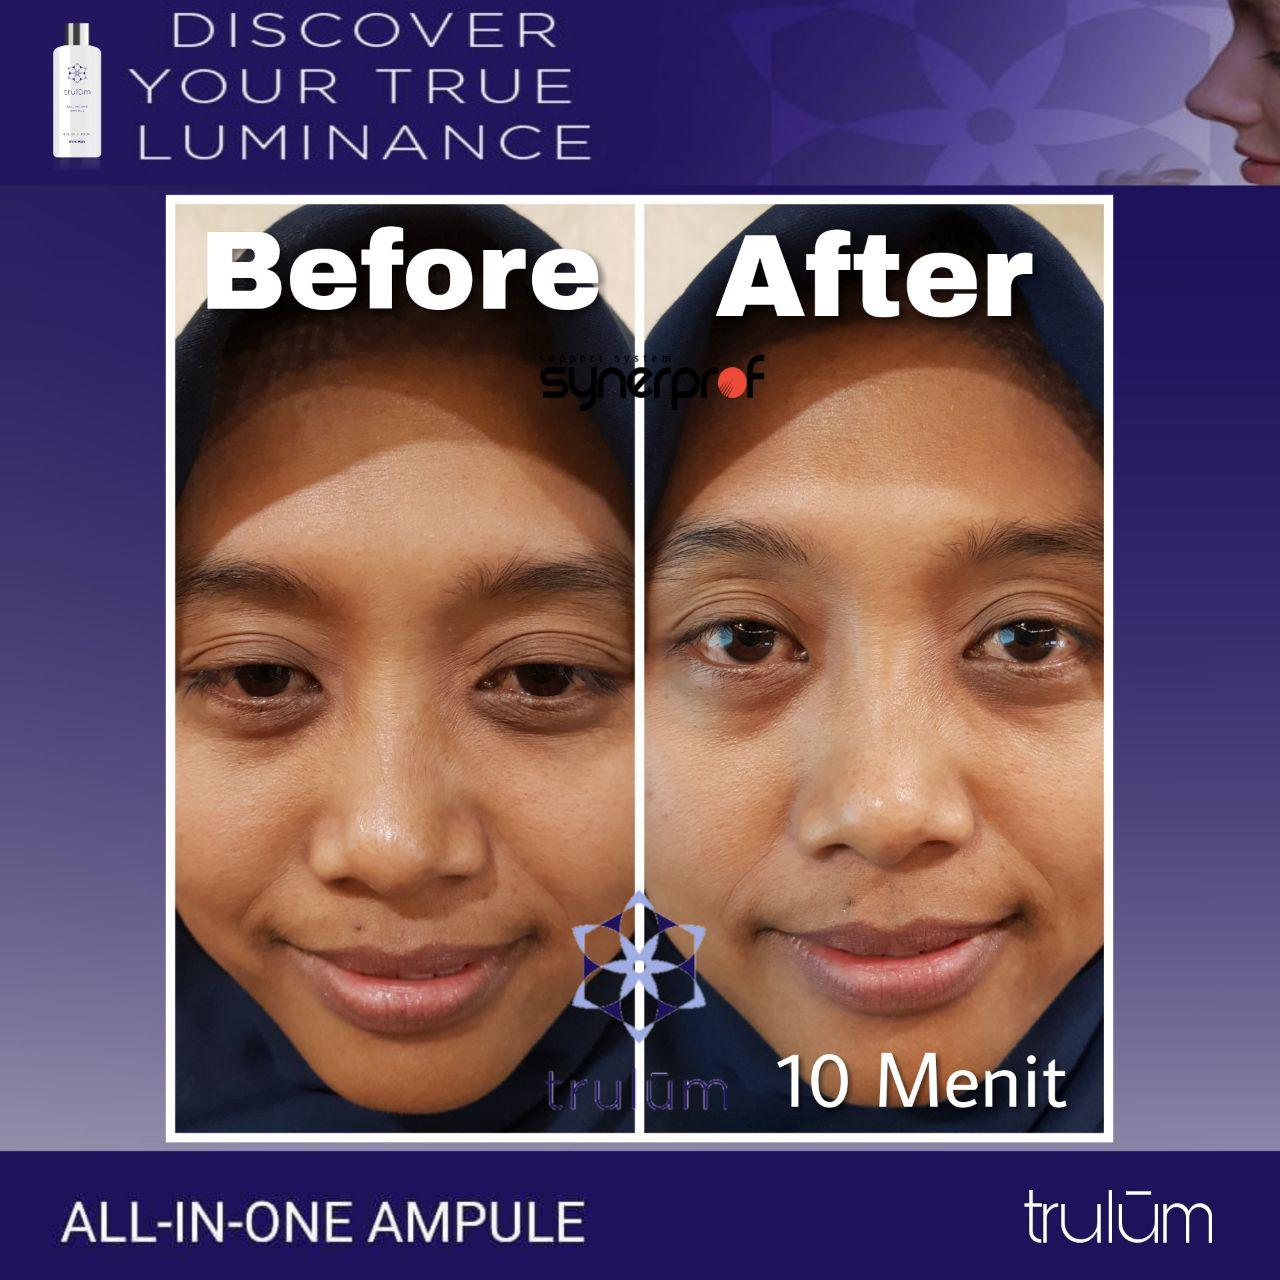 Jual Trulum All In One Ampoule Di Kubung, Solok WA: 08112338376